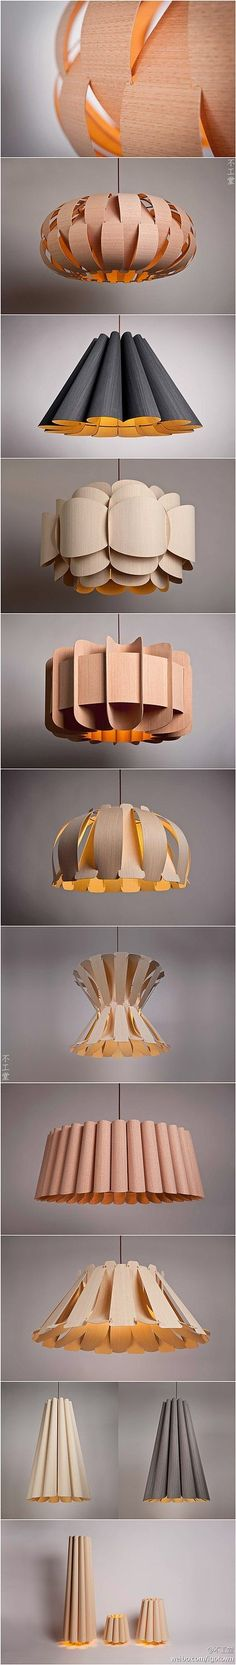 Beautiful cut and folded paper (mostly) pendant lamps. @Naomi Francois Francois Kendall might like this. #Arts Design